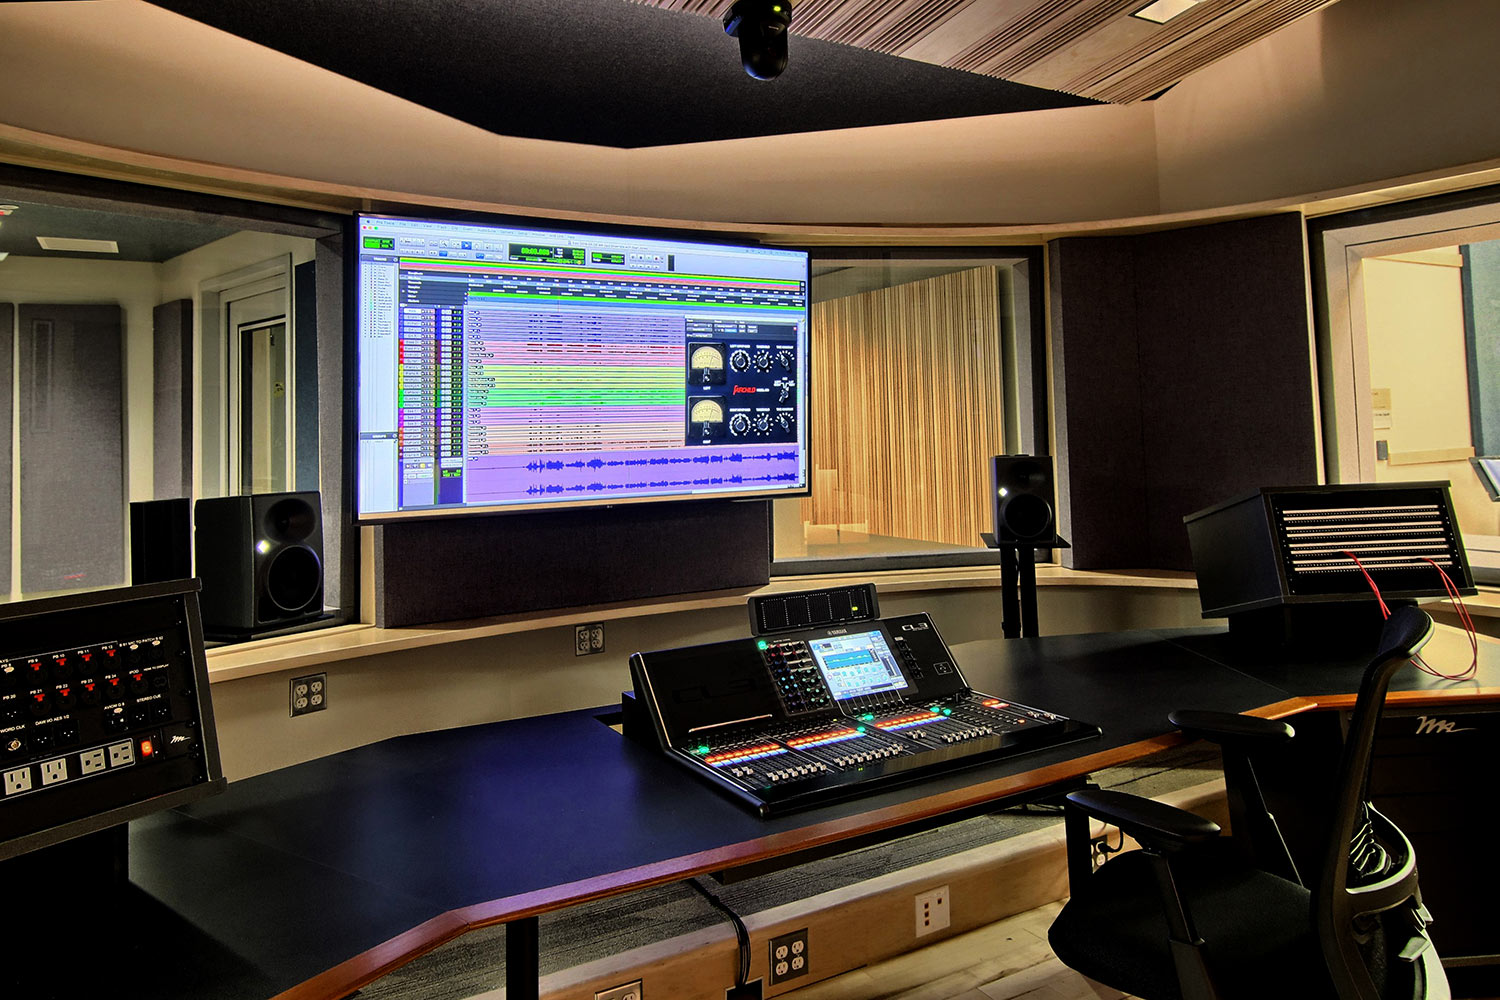 Interlochen has recently completed their new complex. A key component of the new complex is a state-of-the-art recording/teaching studio complex developed by WSDG. Floor Level Studio 2.